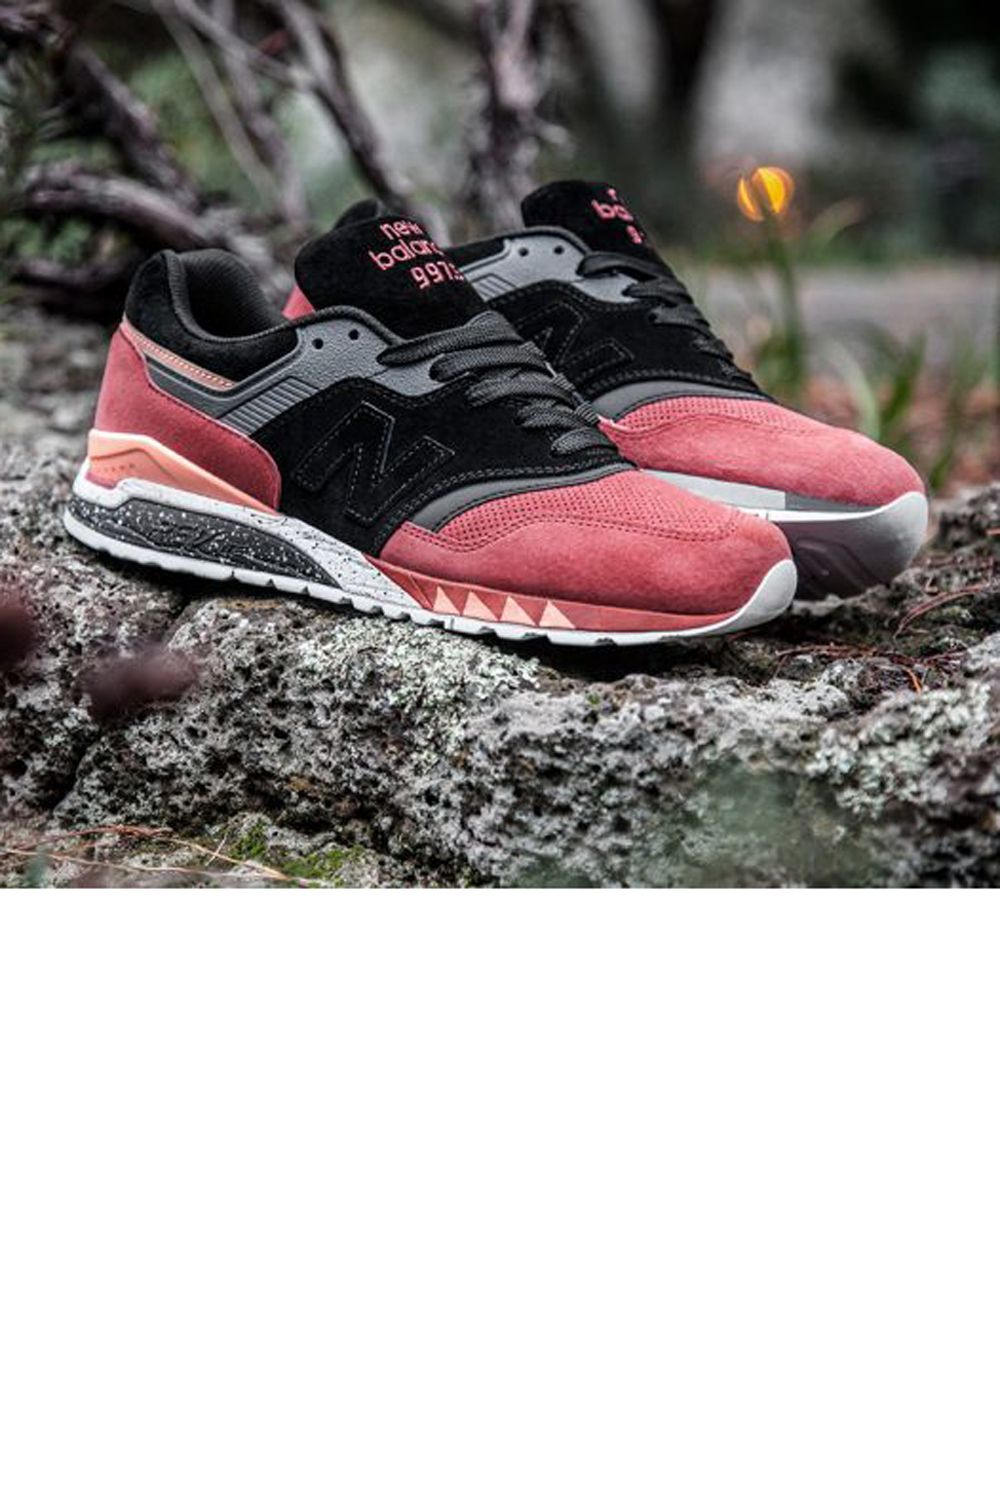 383eaa007ac 50+ Best Sneakers of 2016 - These Are The Coolest Shoes of 2016